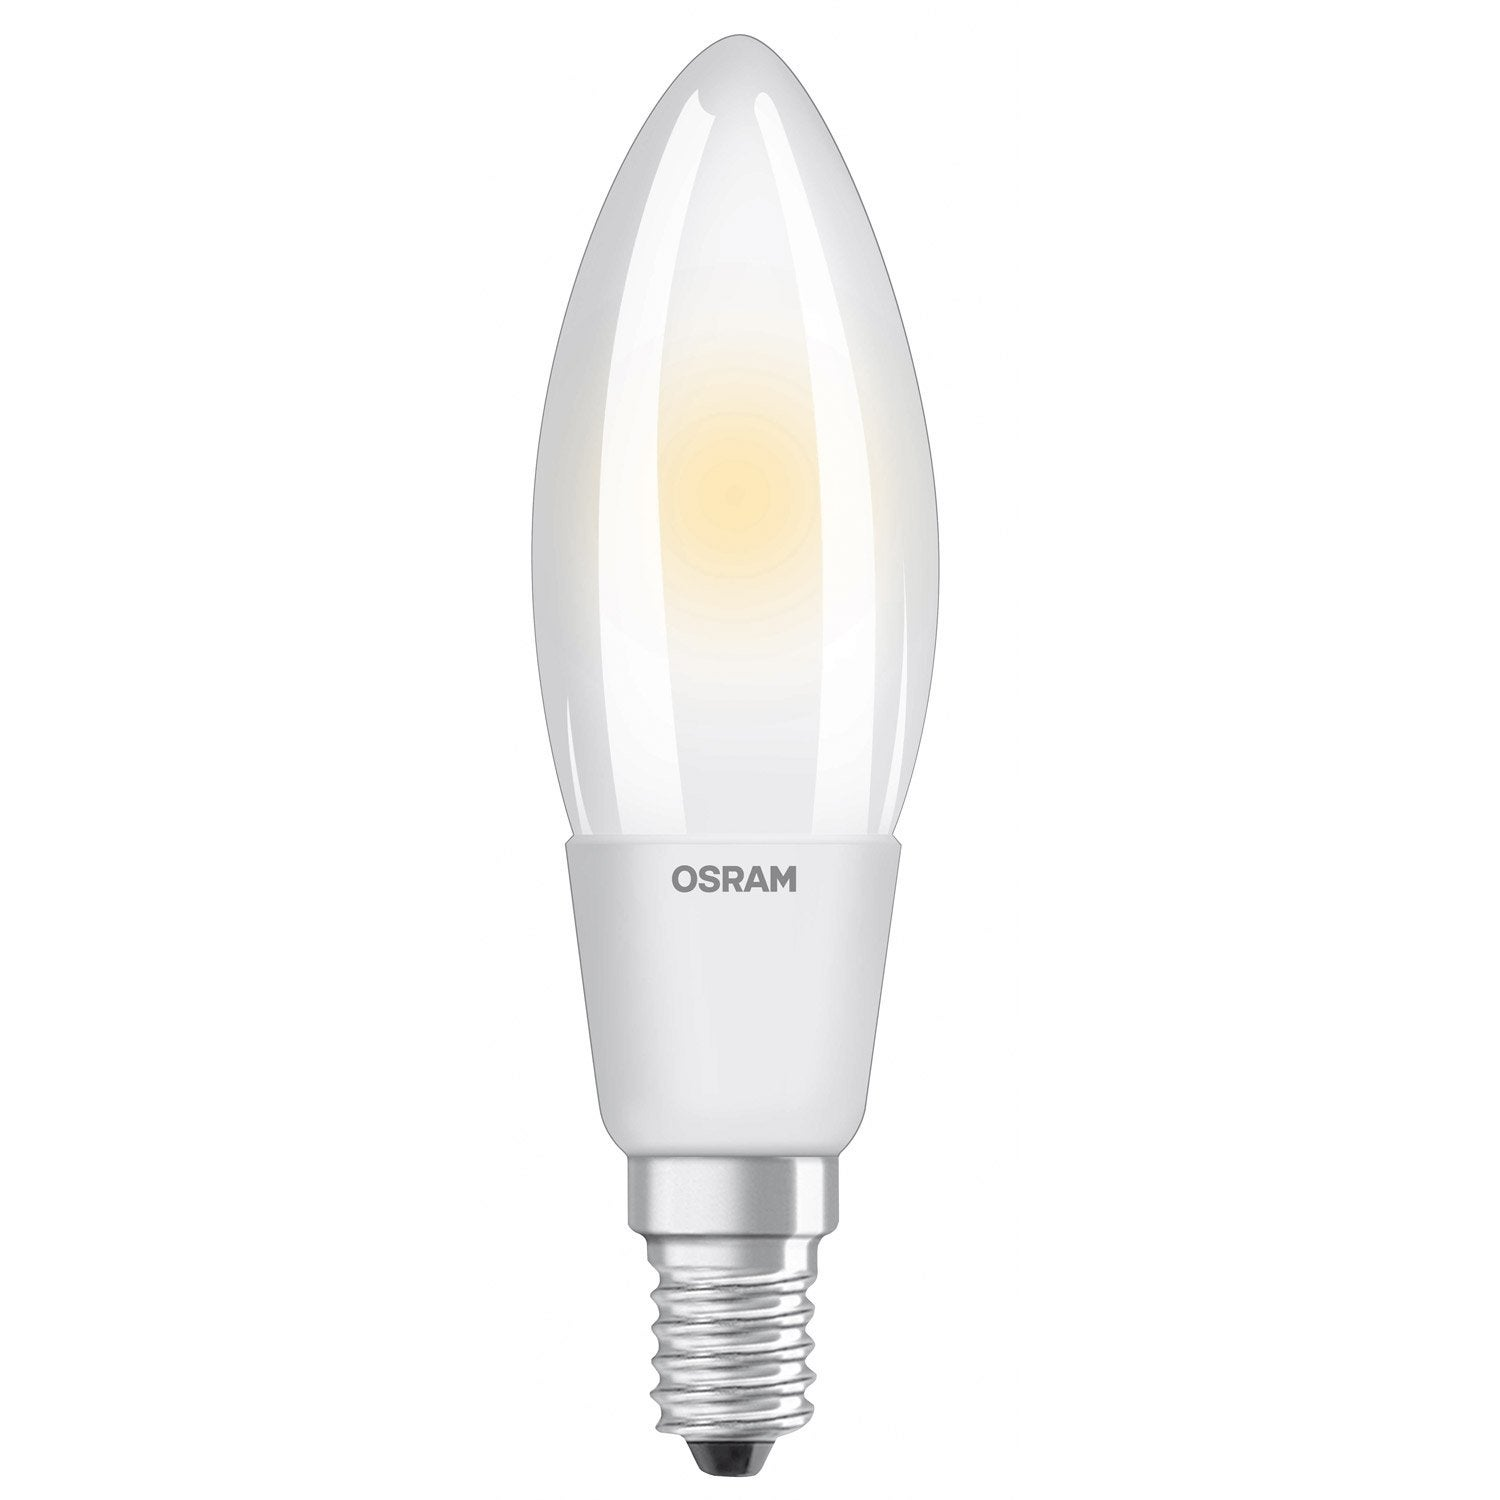 Led Bulb E27 Flame Dimmable 5w 470lm Equiv 40w 2700k 300 Osram